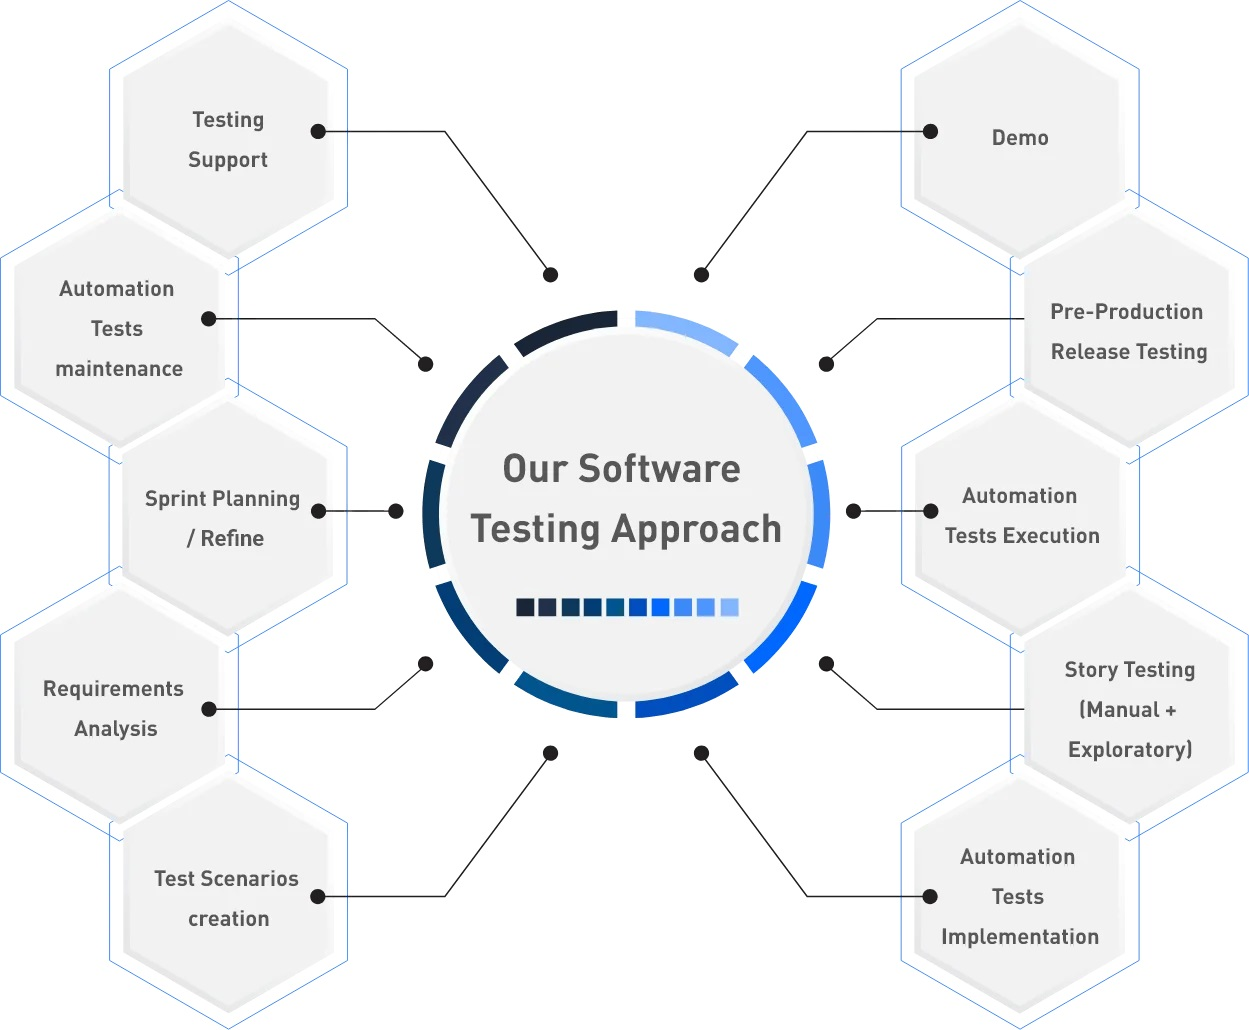 images for software-testing-approach